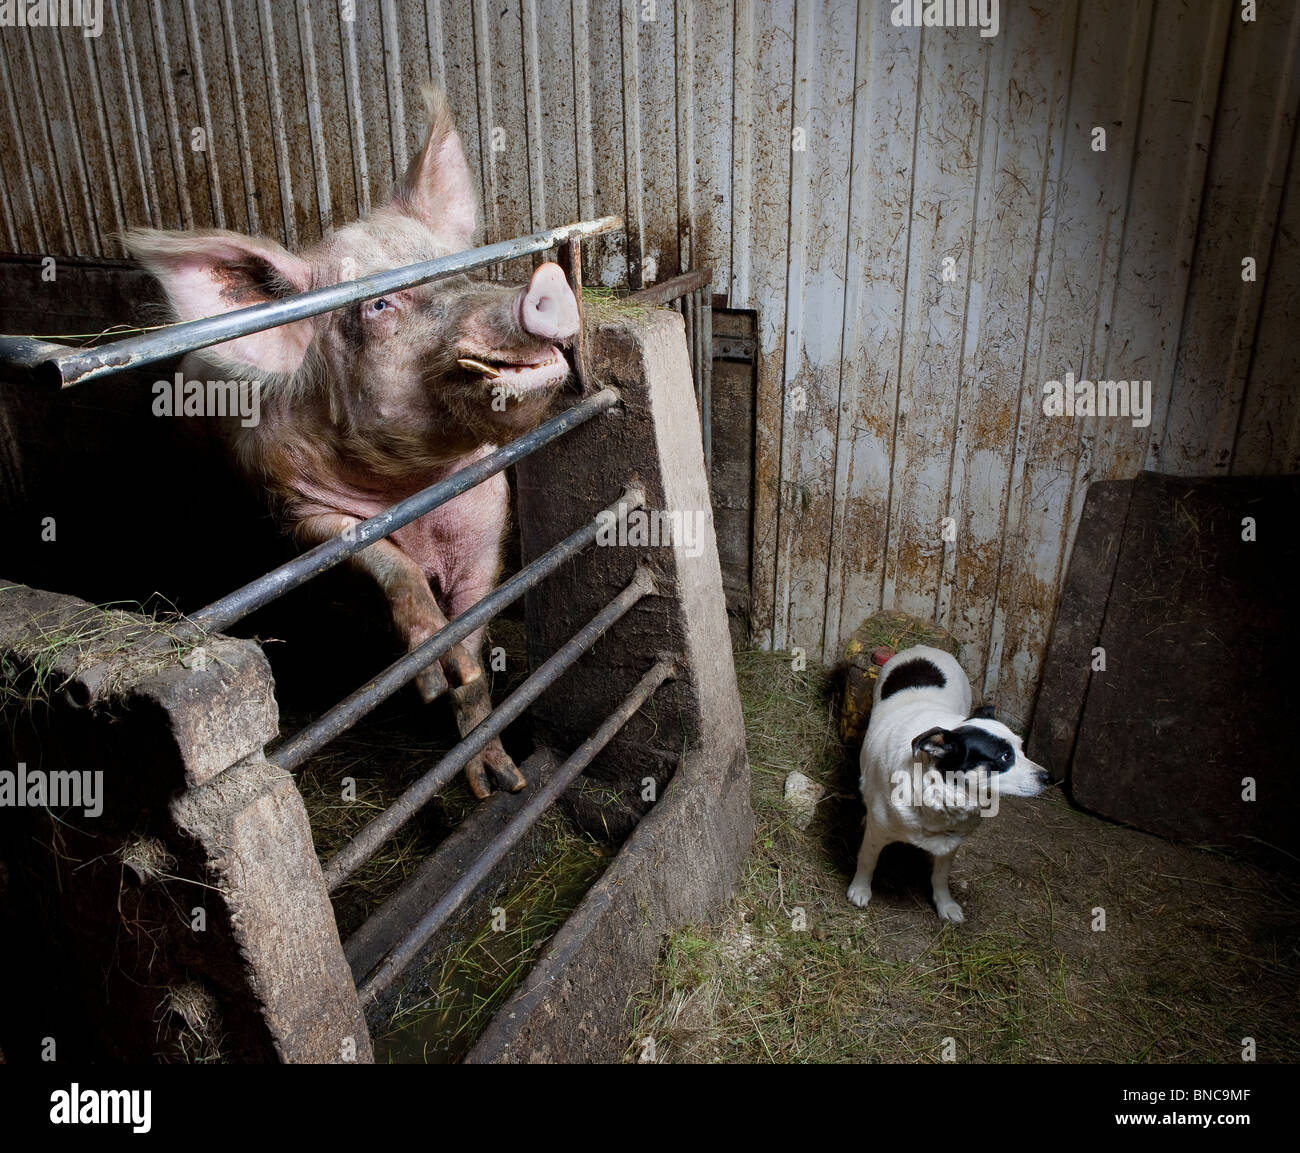 Pig with Dog in farmhouse, Iceland - Stock Image